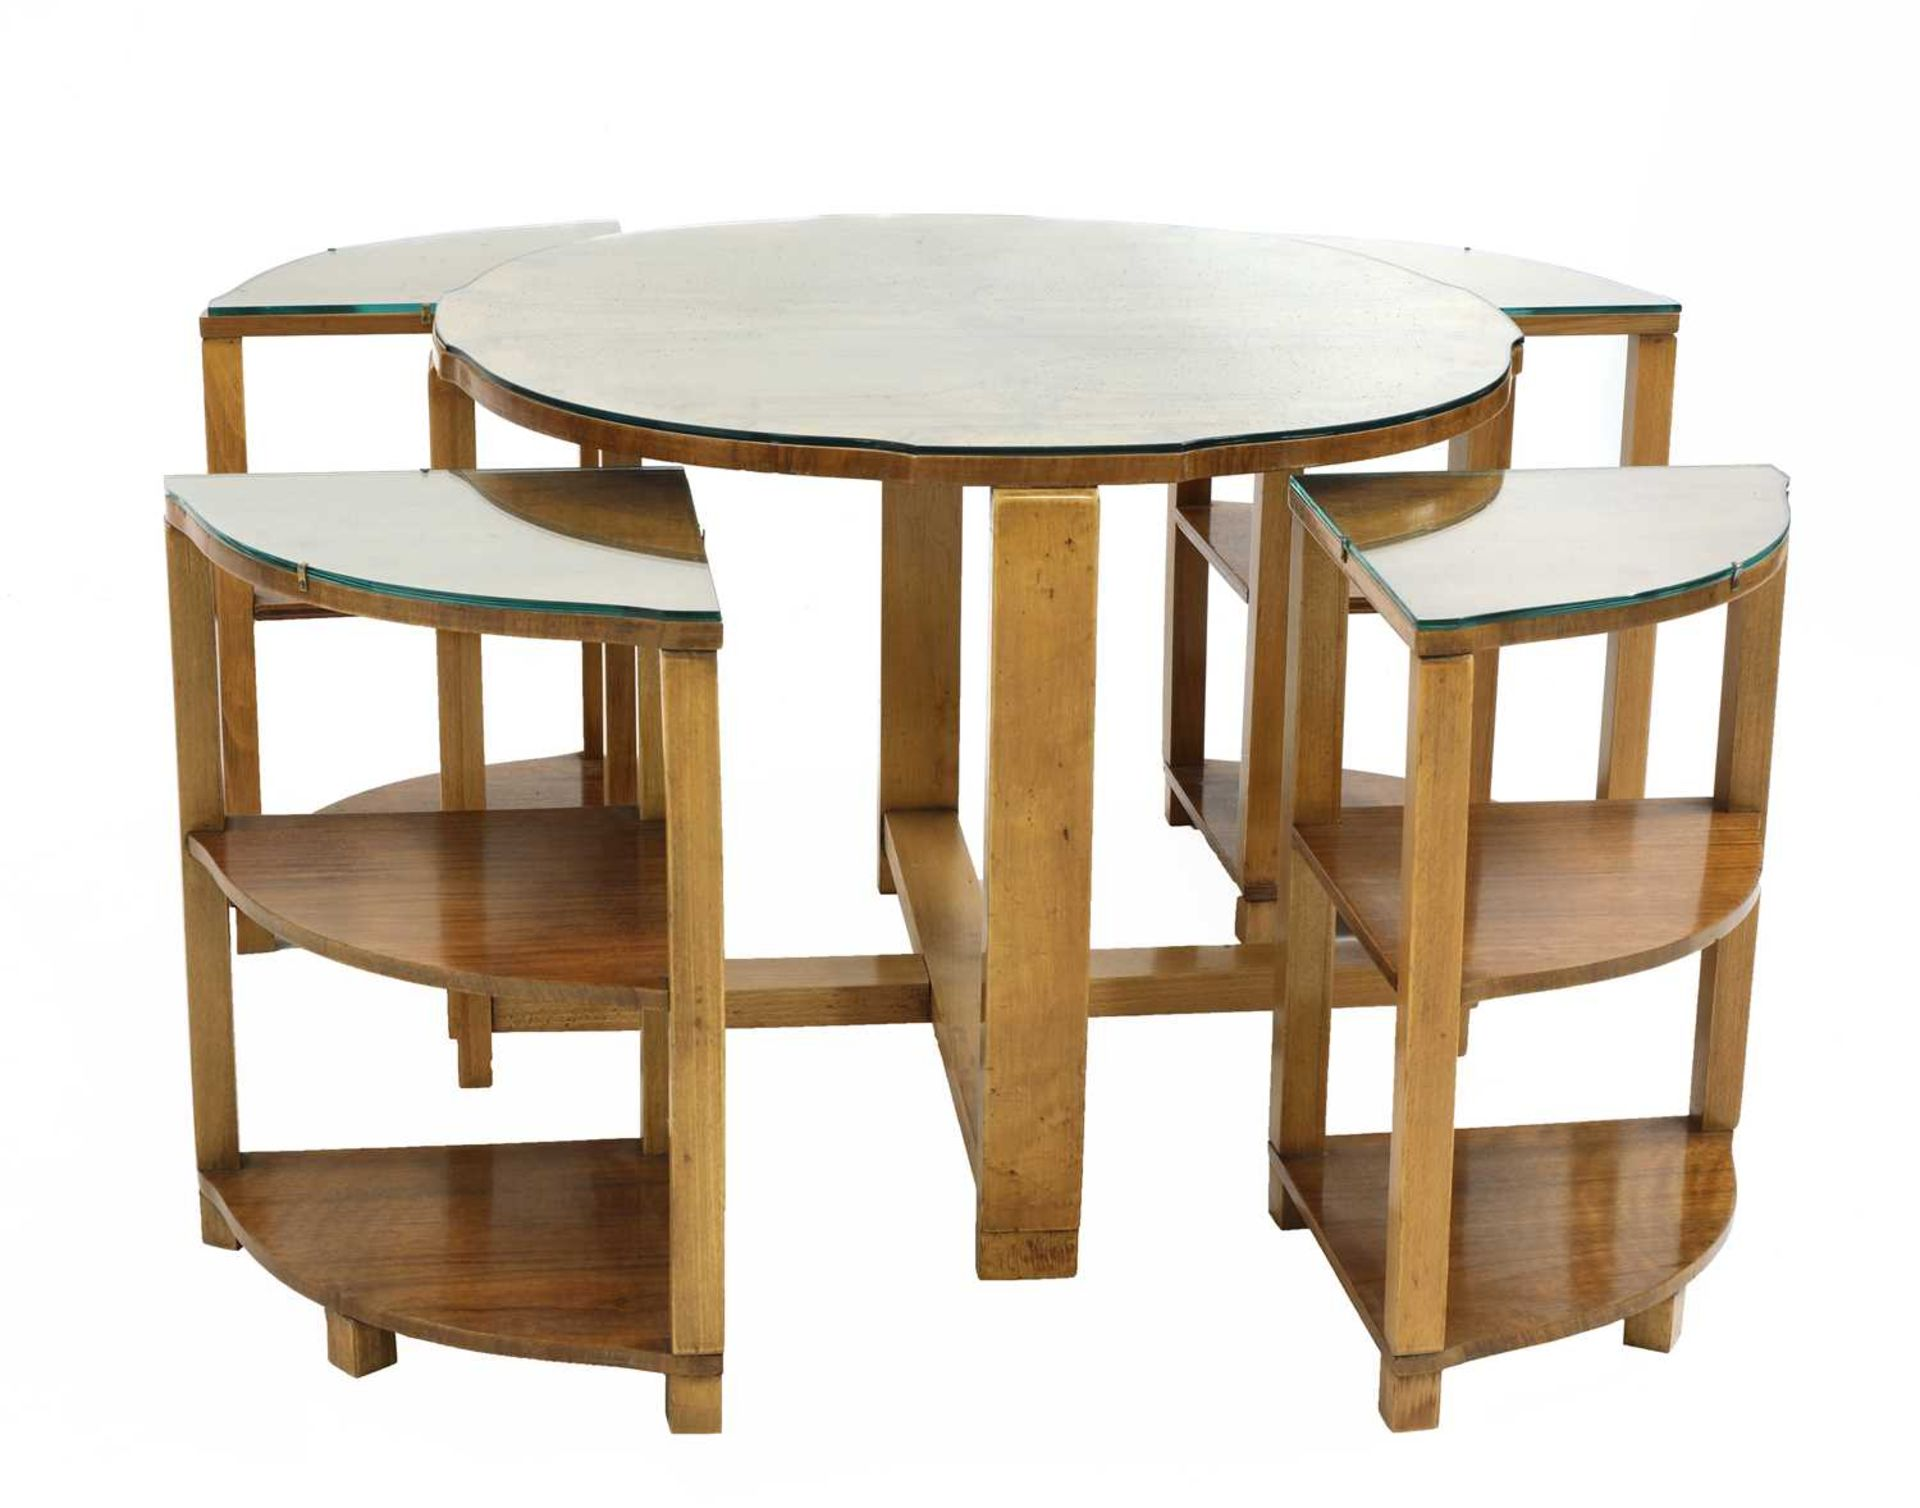 An Art Deco walnut nest of tables, - Image 2 of 6